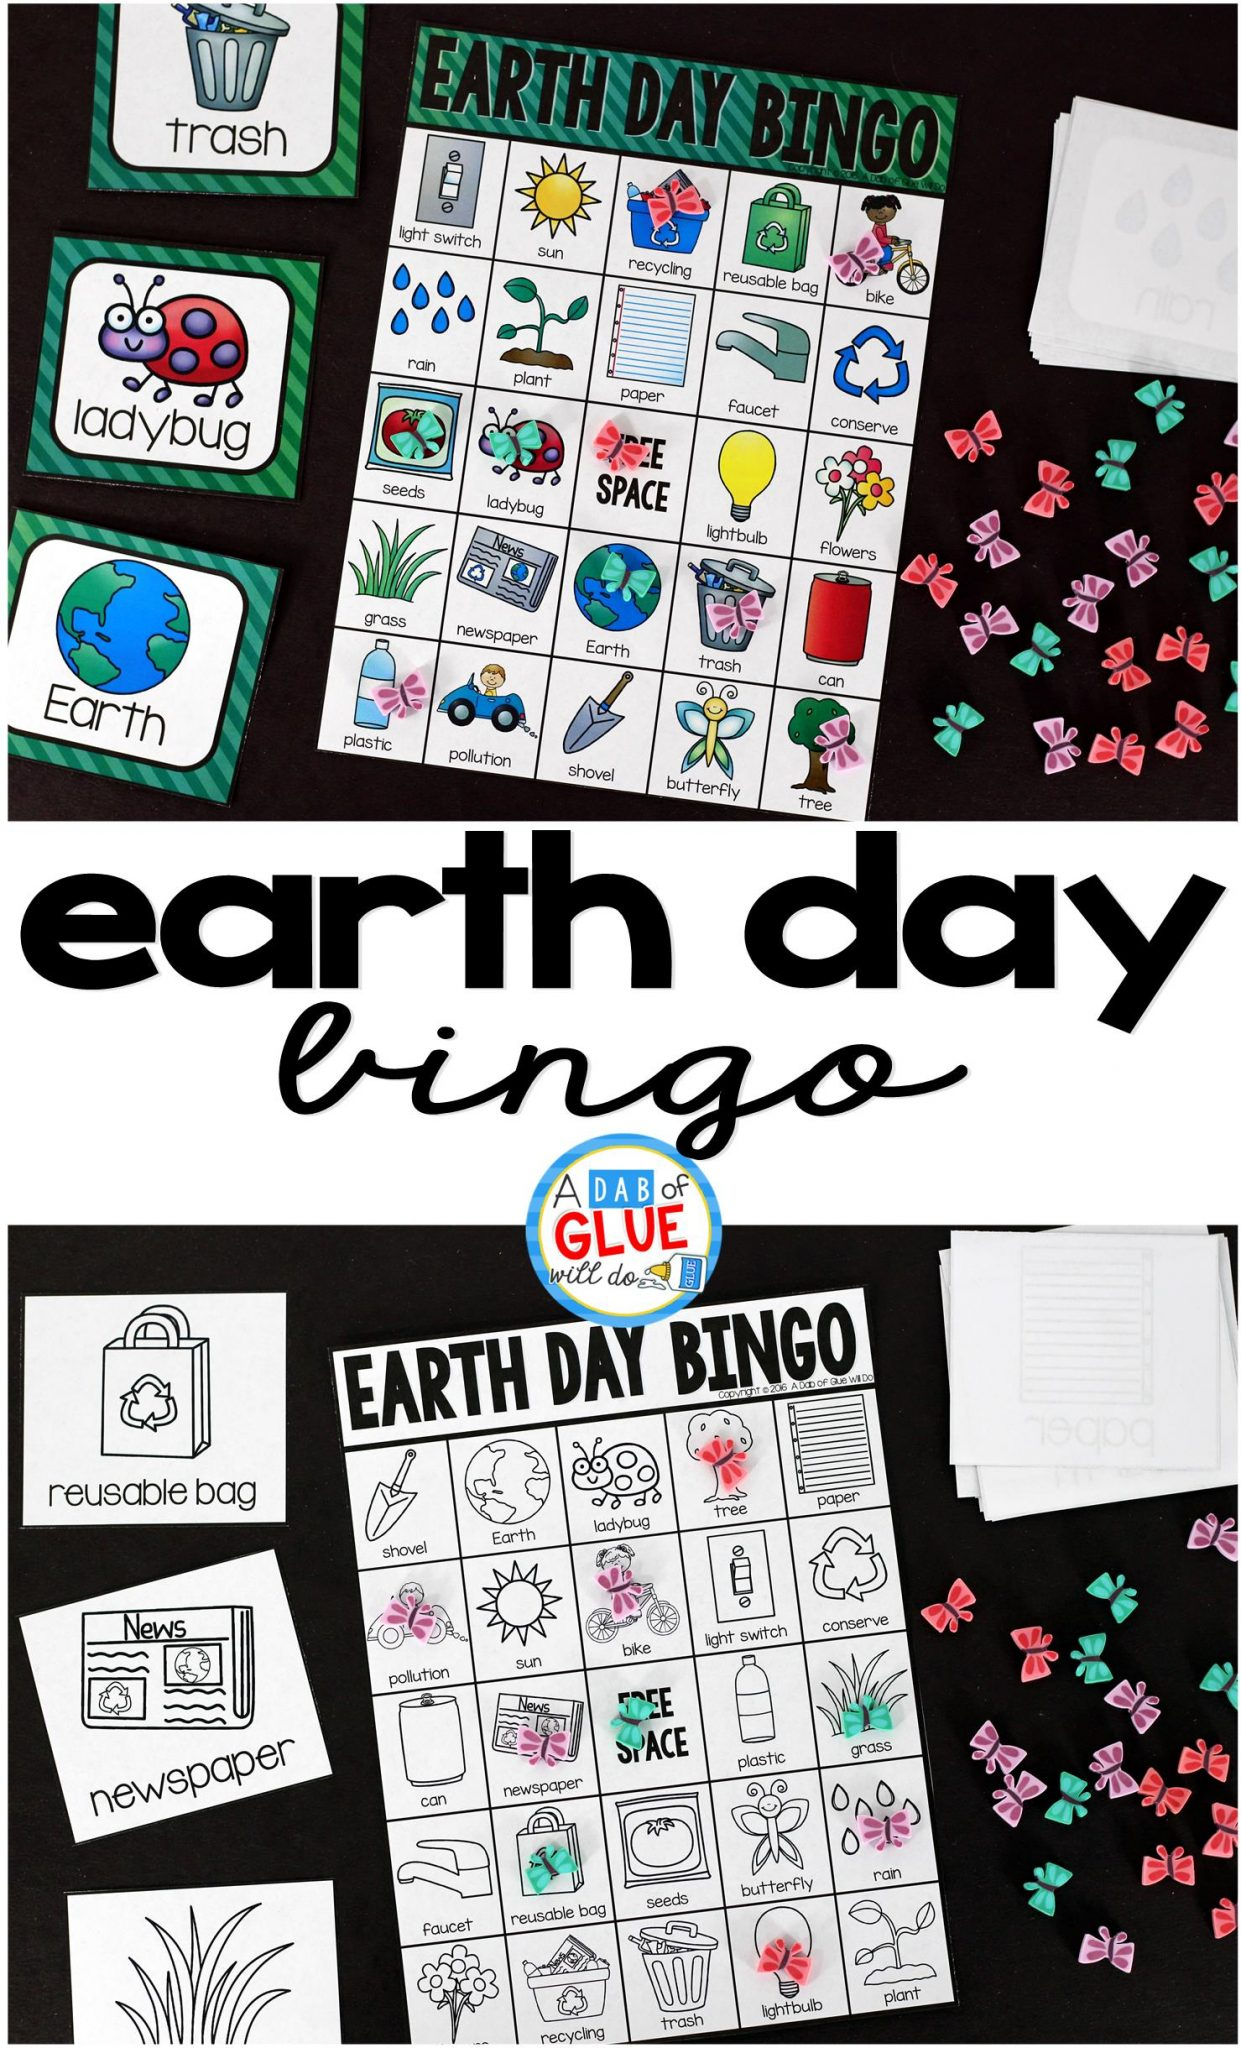 Play Bingo with your elementary age students with these fun Bingo Sheets for Earth Day! Perfect for large groups in your classroom or small review groups. Add this to your spring party with 30 unique Earth Day Bingo boards or any celebration with your students! Teaching cards are also included in this fun game for young children! Black and white options available to save your color ink.